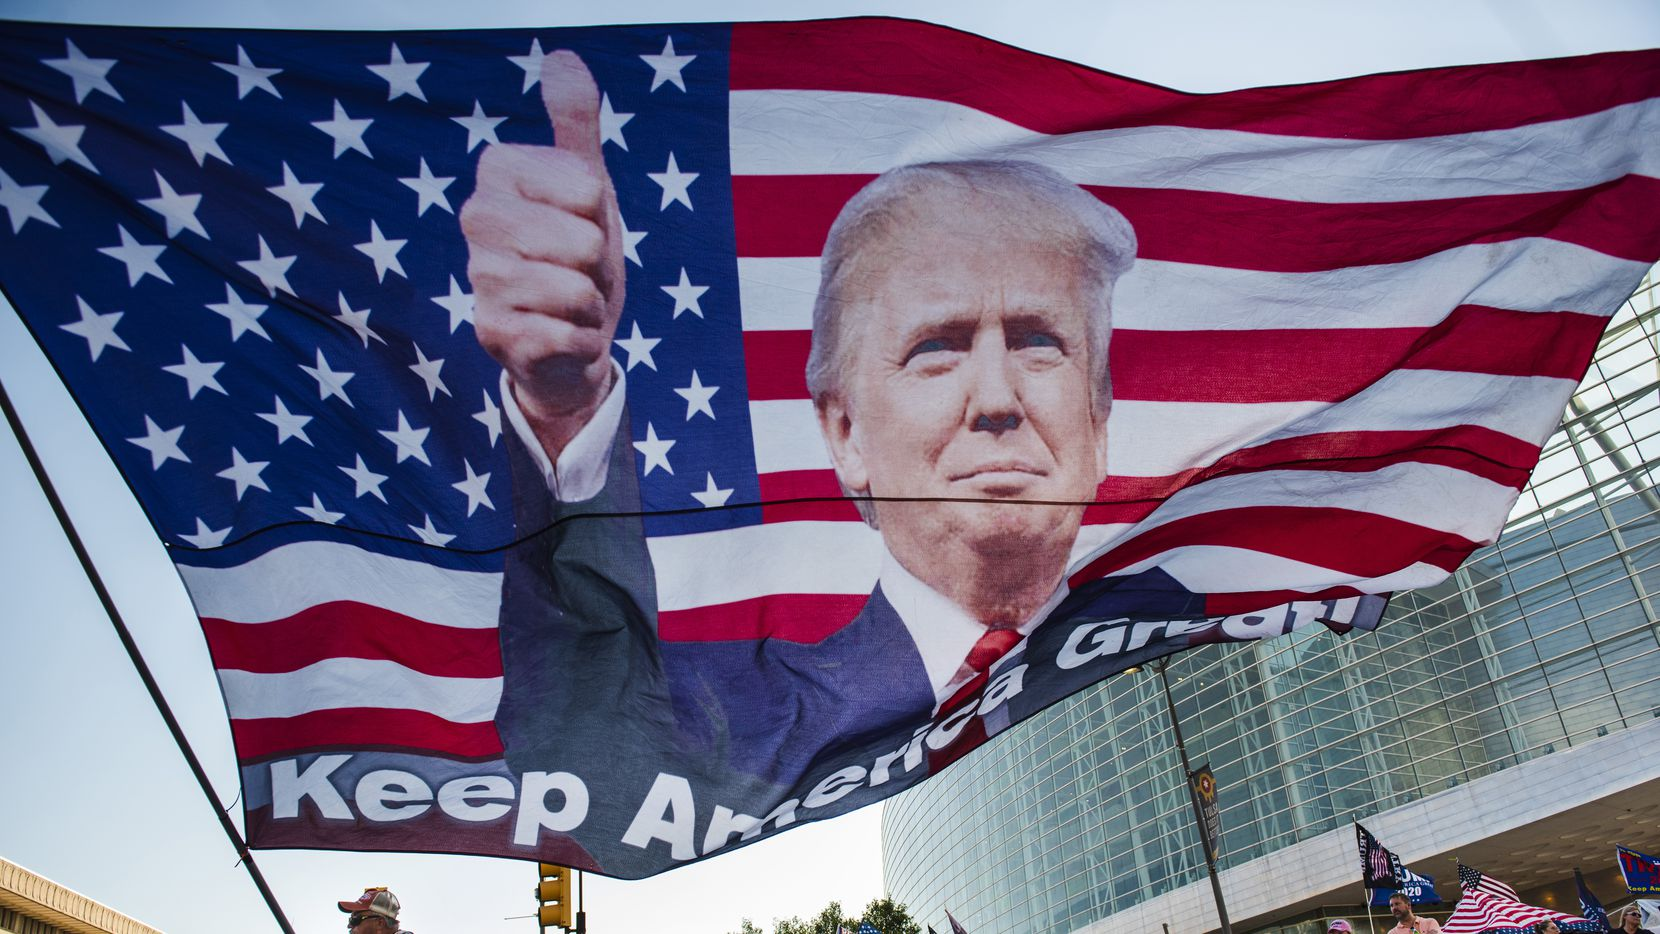 Randal Thom, 60, of Minnesota, waves an oversized flag of President Donald Trump outside the BOK Center in Tulsa, Okla., on June 19, 2020, the day before the president's first campaign rally since March 2.